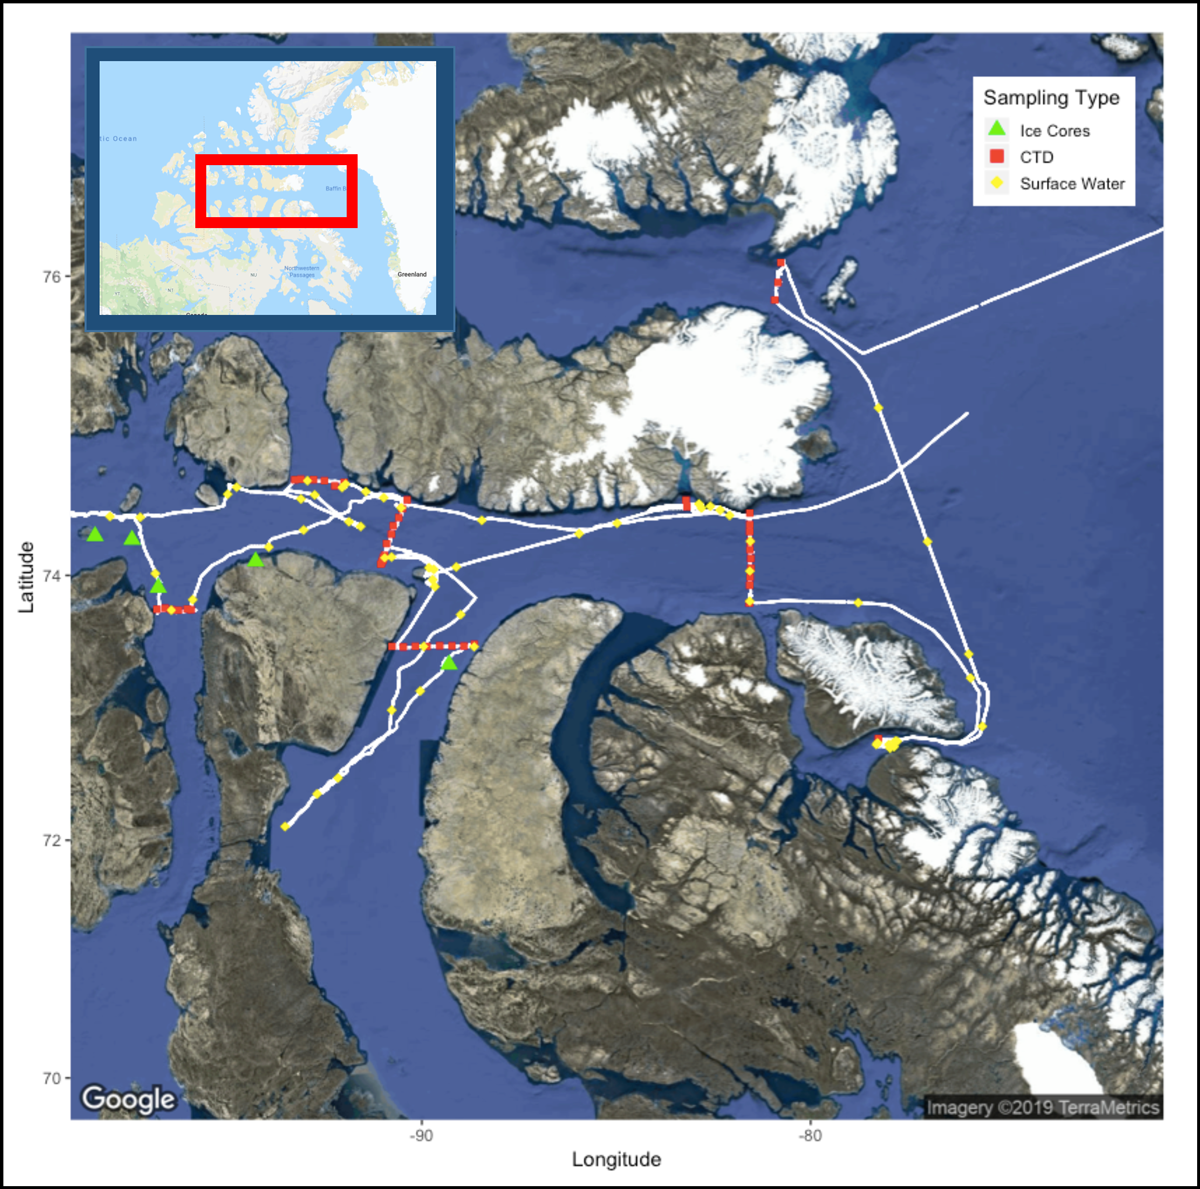 Map of ship track and sampling locations during the 2019 Northwest Passage Project expedition